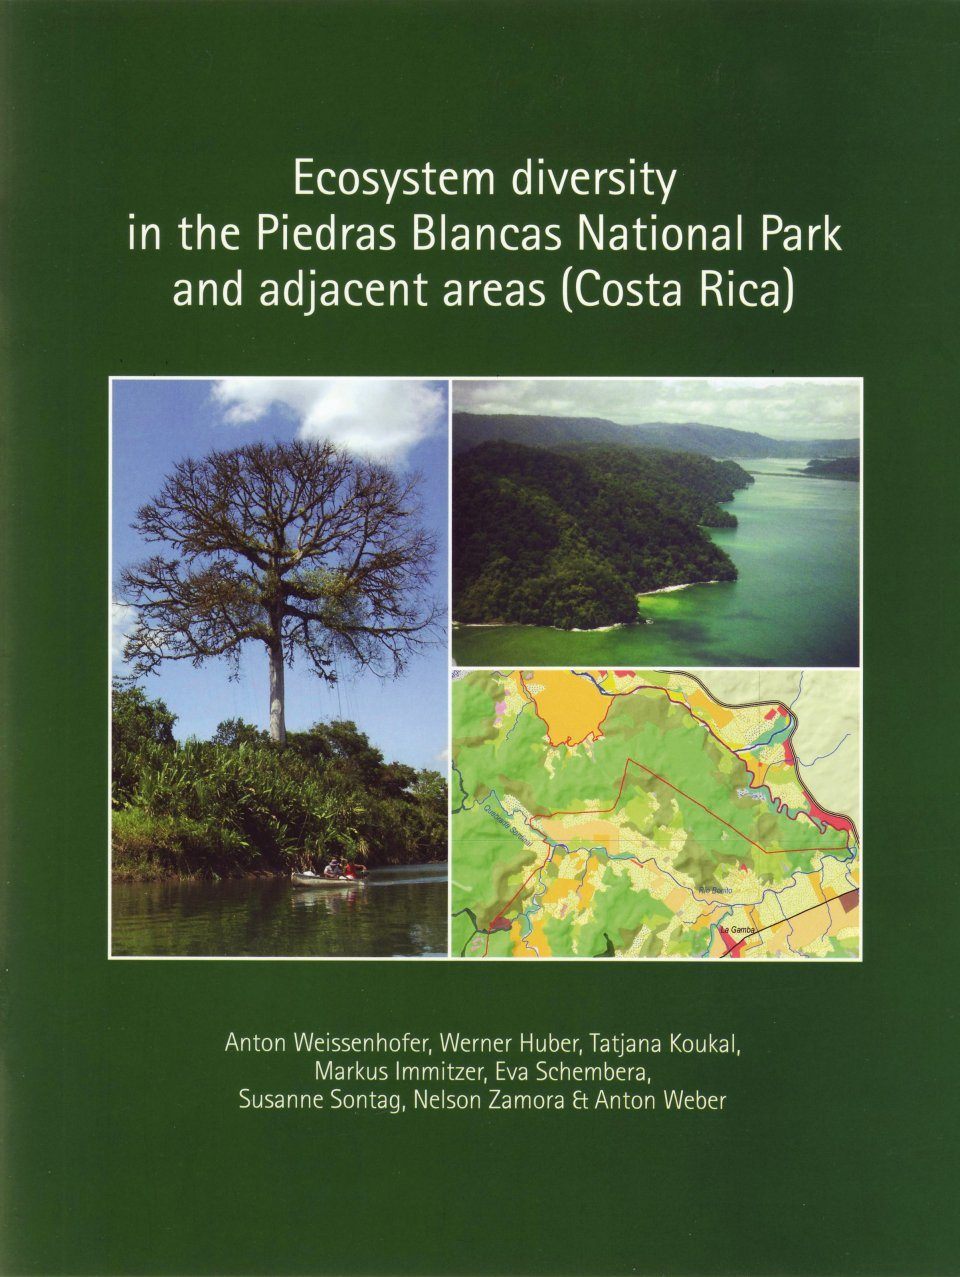 Ecosystem Diversity in the Piedras Blancas National Park and Adjacent Areas (Costa Rica)